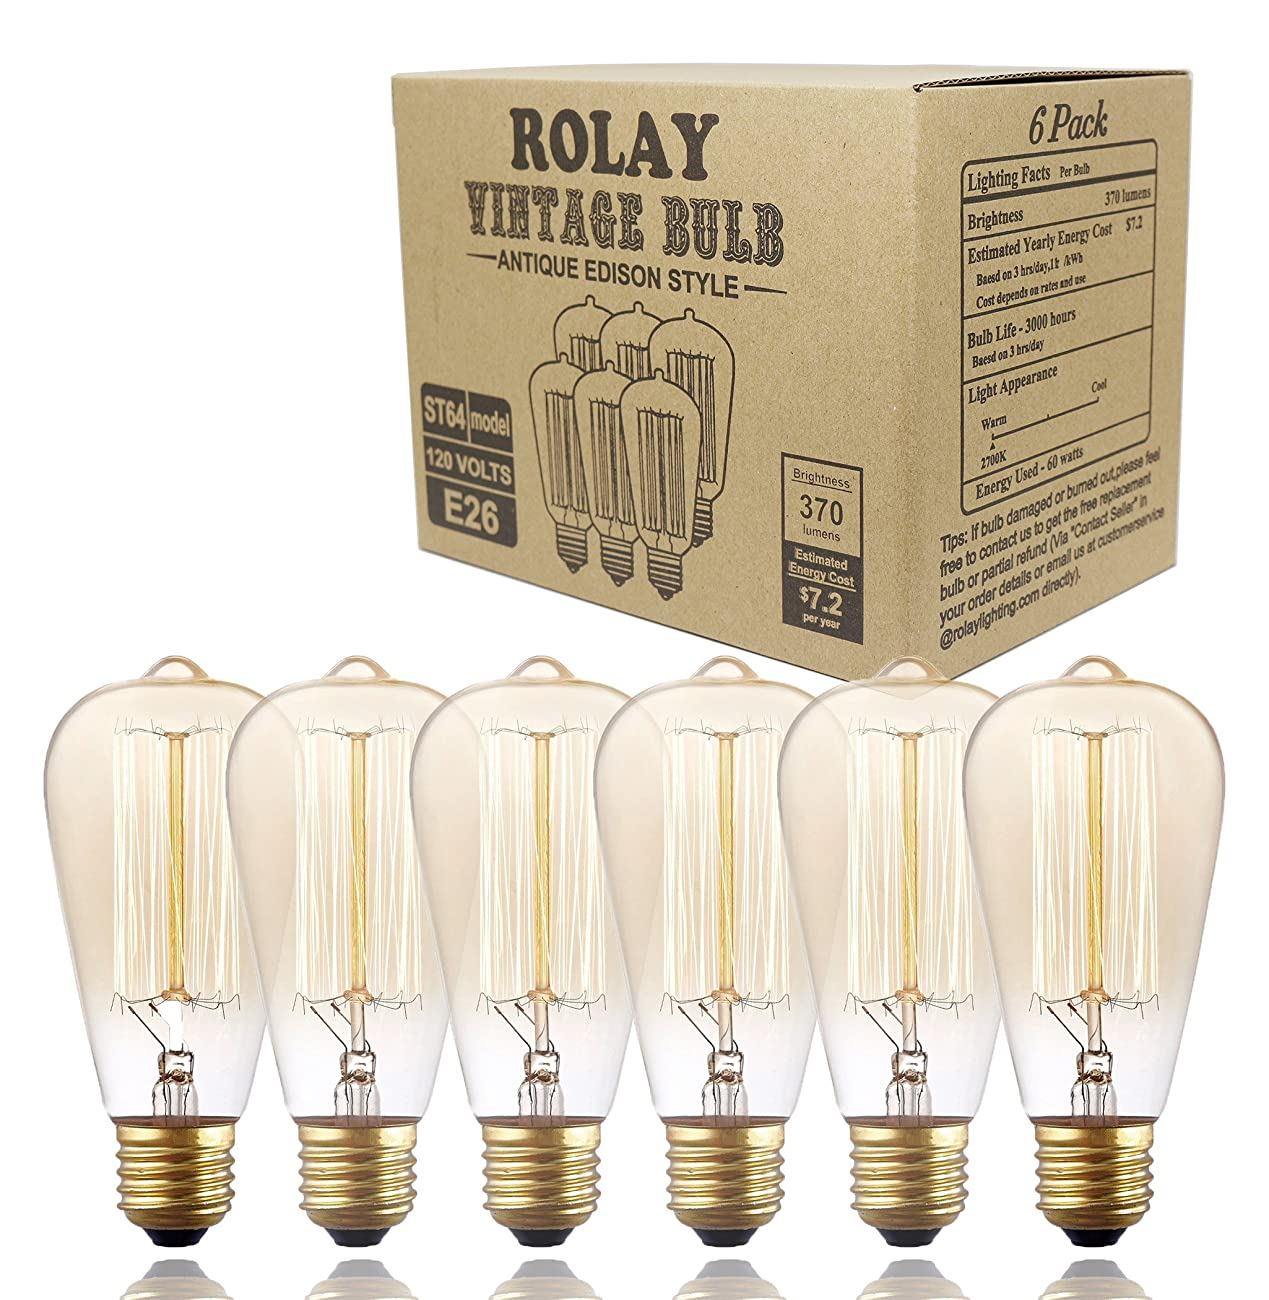 Edison Bulbs, Rolay 60w Dimmable Industrial Pendant Filament Light Bulbs with Vintage Antique Style Design for Pendant Lighting, Wall Sconces, Ceiling Fan and Chandeliers - 370 Lumens - 6 Pack 0